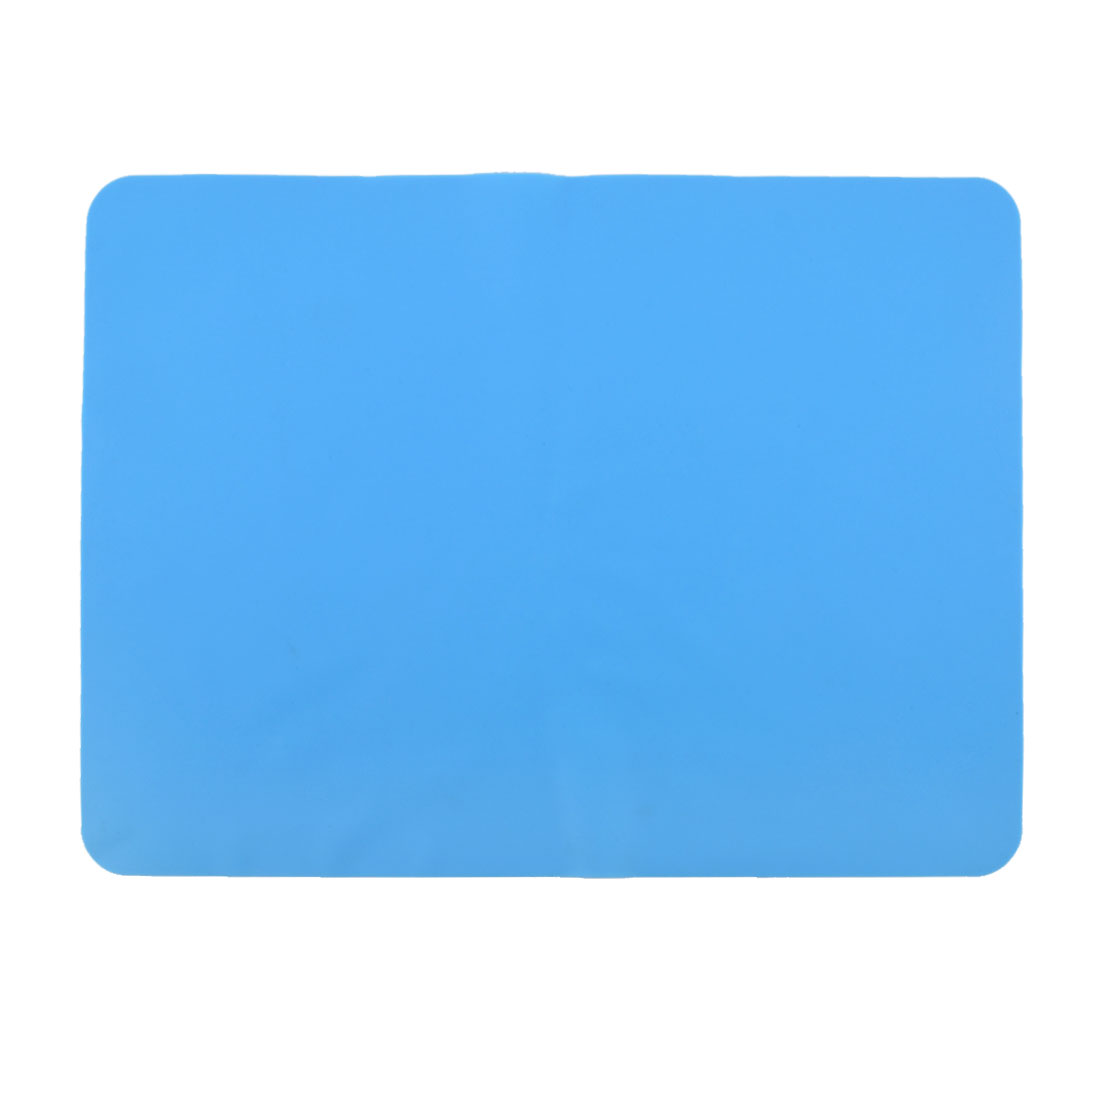 Home Restaurant Silicone Table Heat Resistant Baking Mat Cushion Placemat Blue